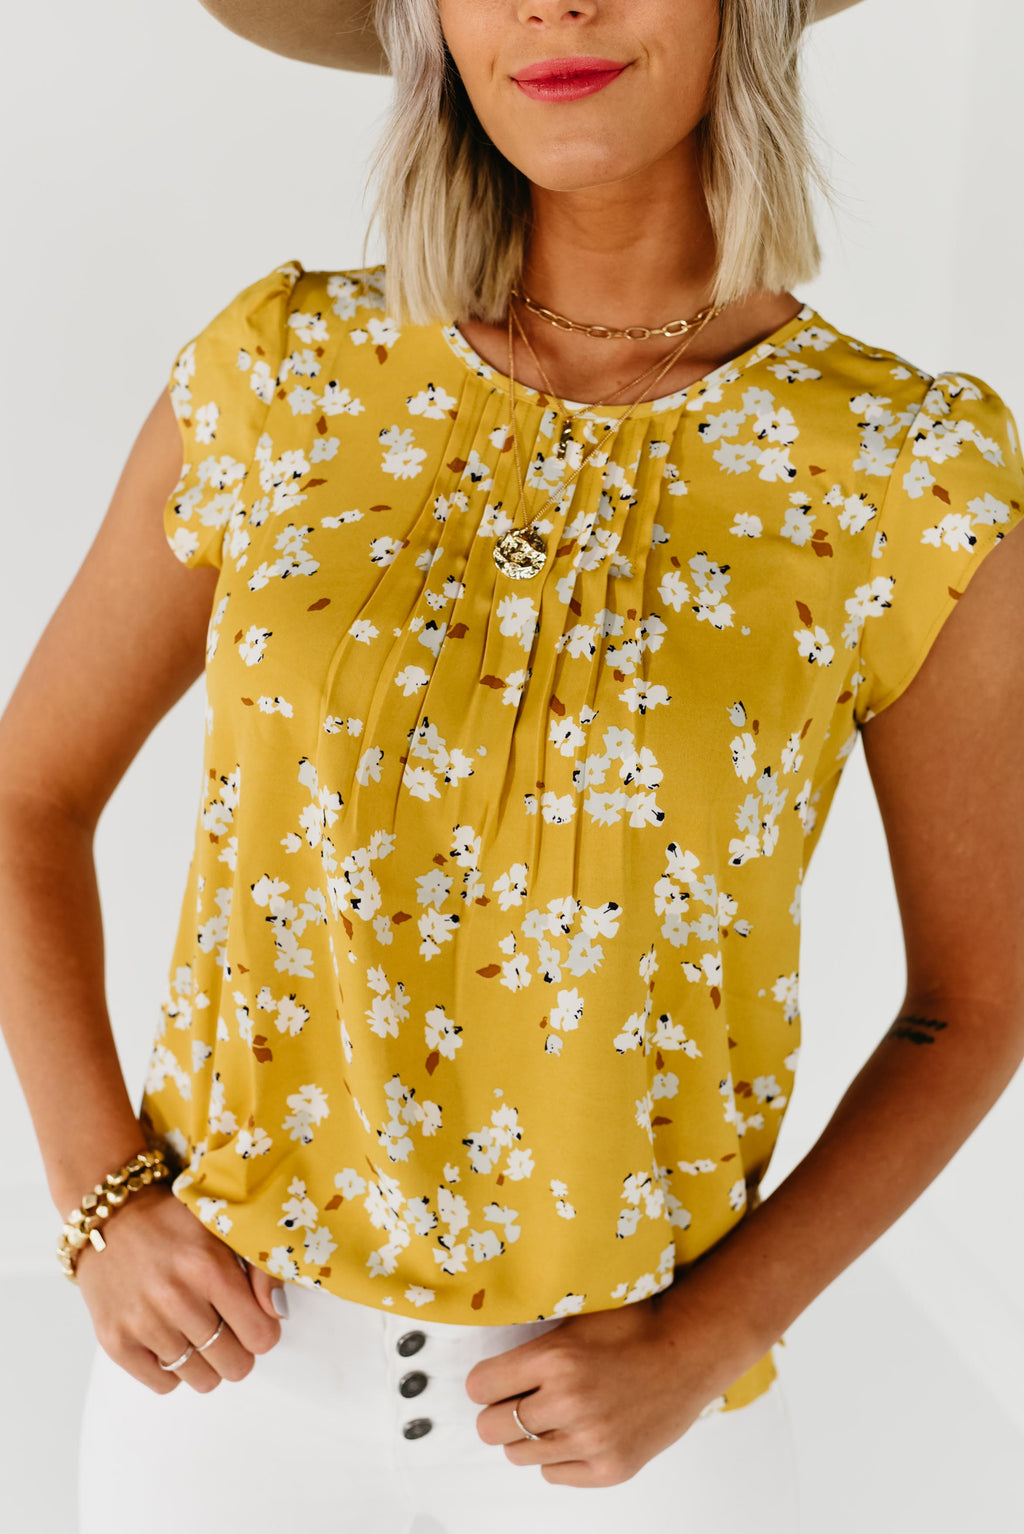 (MOD Exclusive) The Phoenix Pintuck Tulip Sleeve Top - Mustard